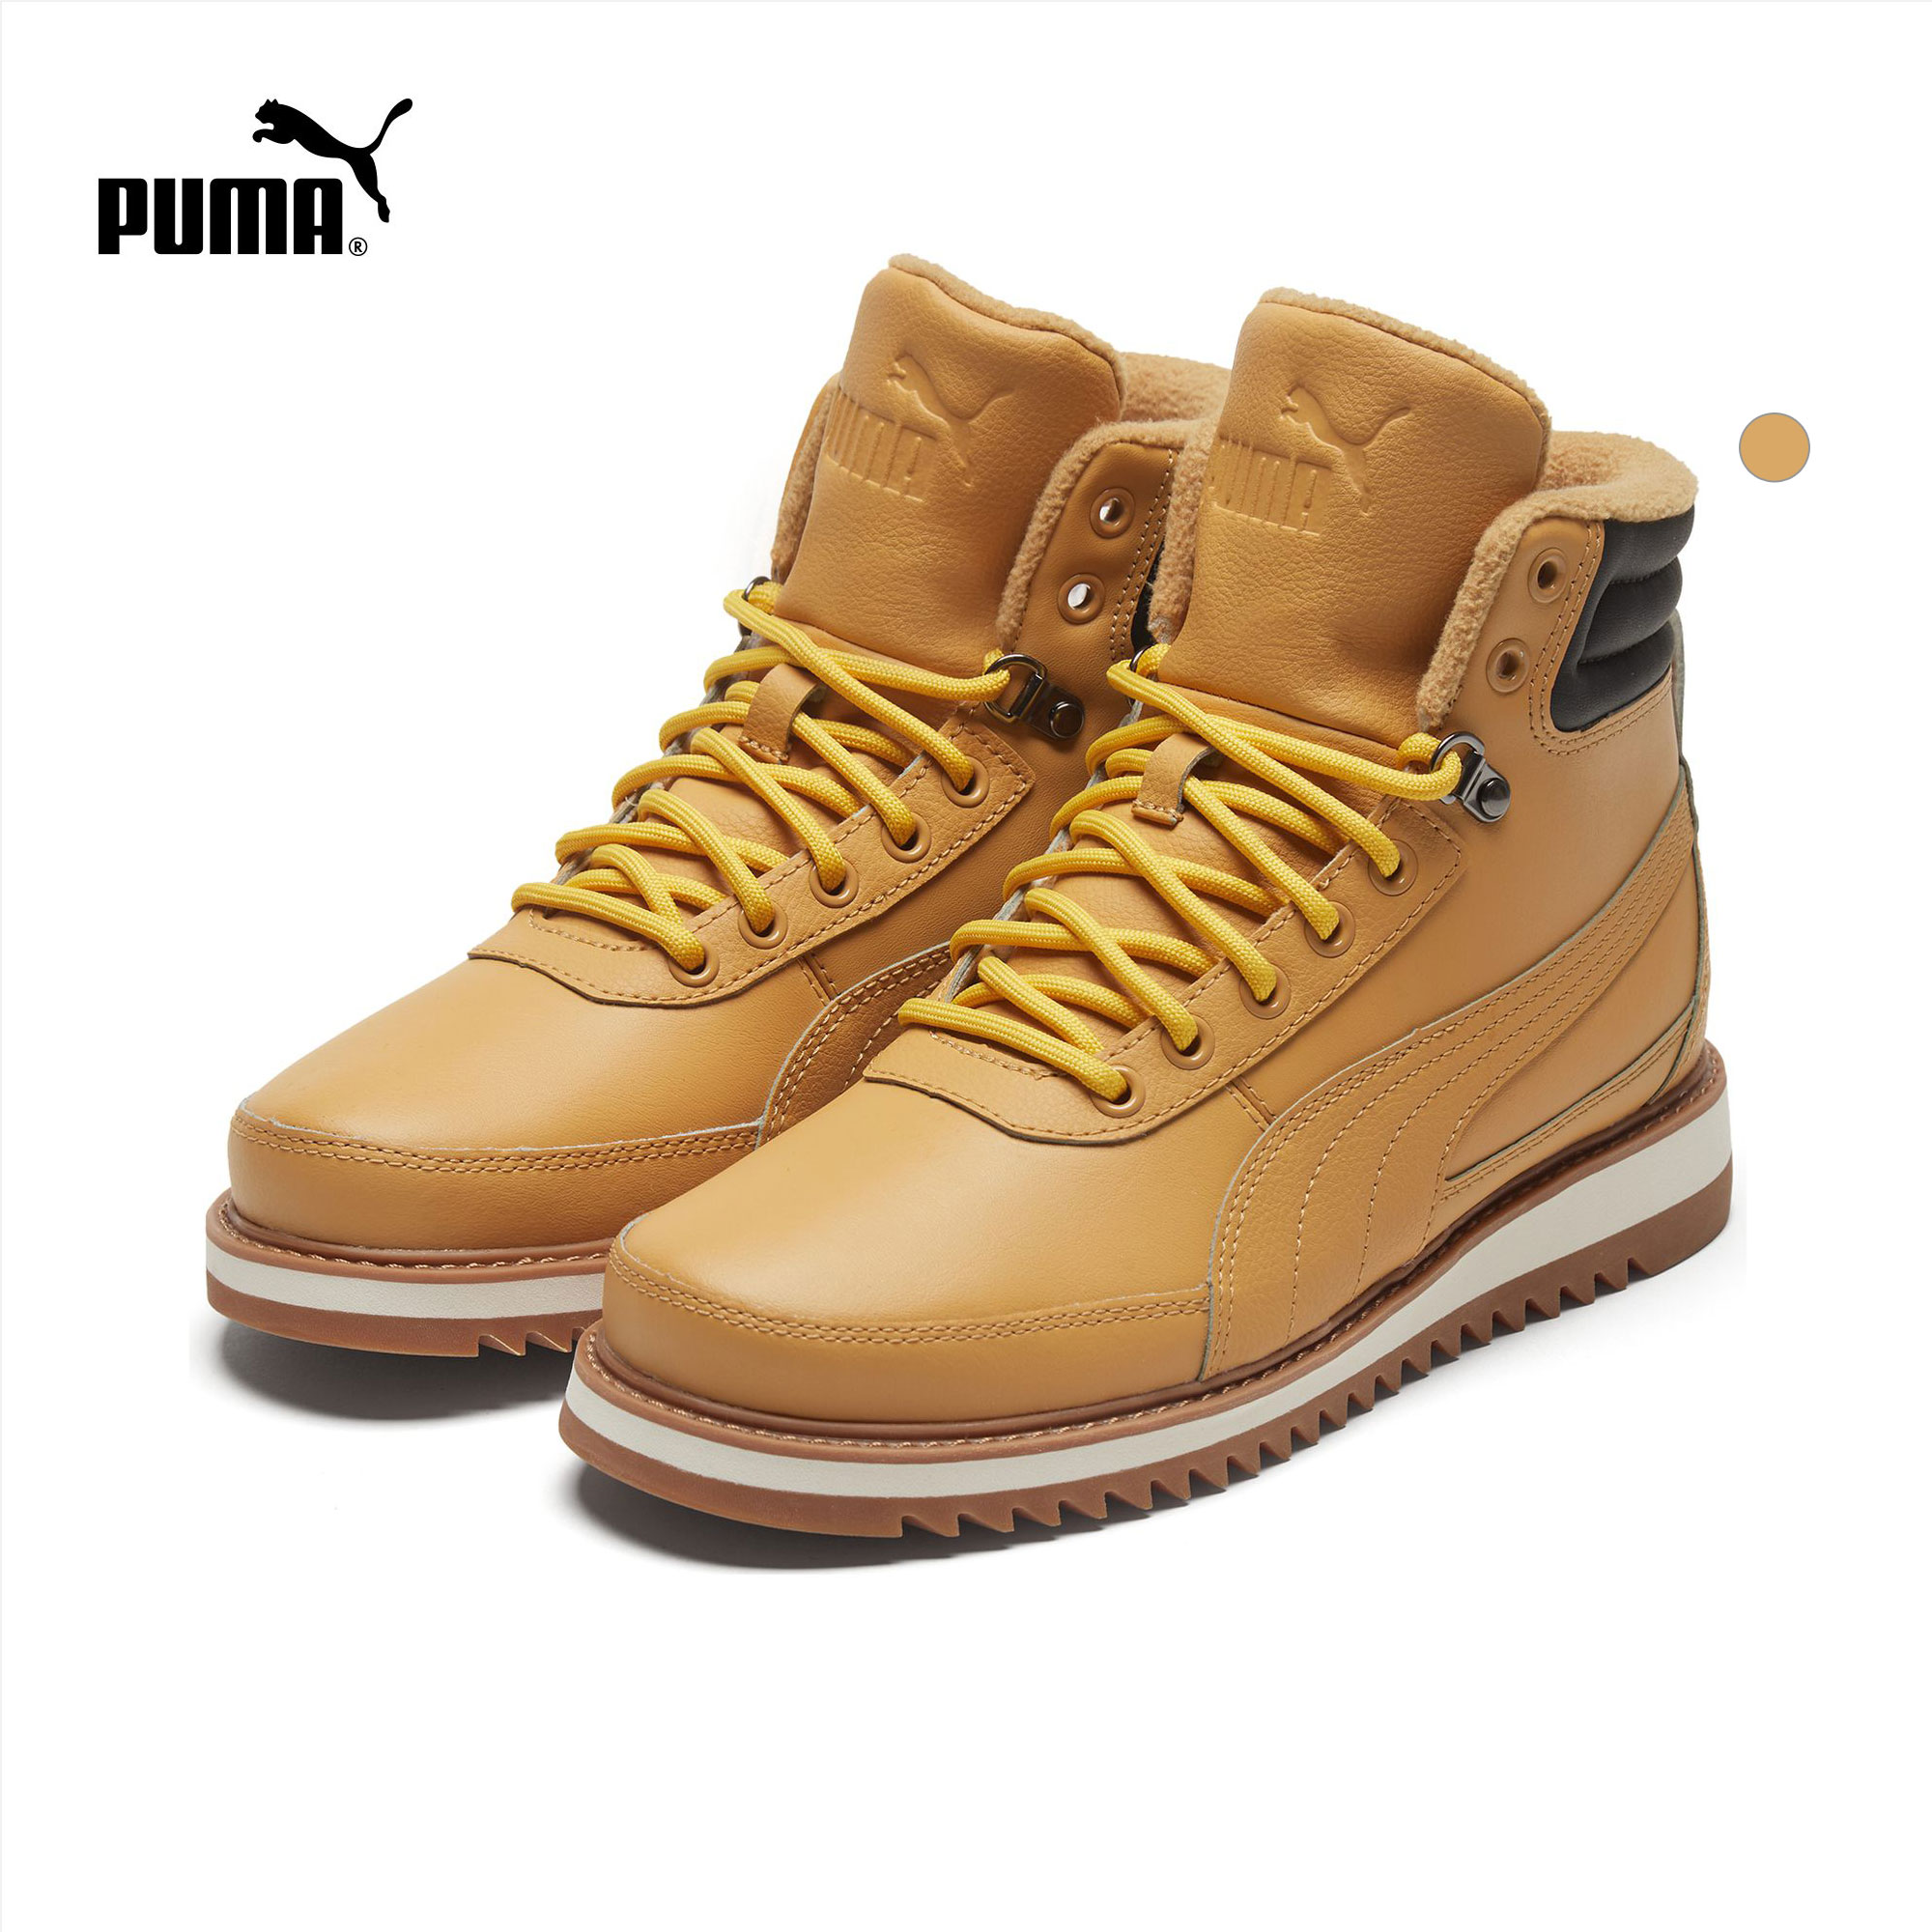 PUMA Hummer official authentic new men and women the same warm casual shoes DESIERTO V2 373025